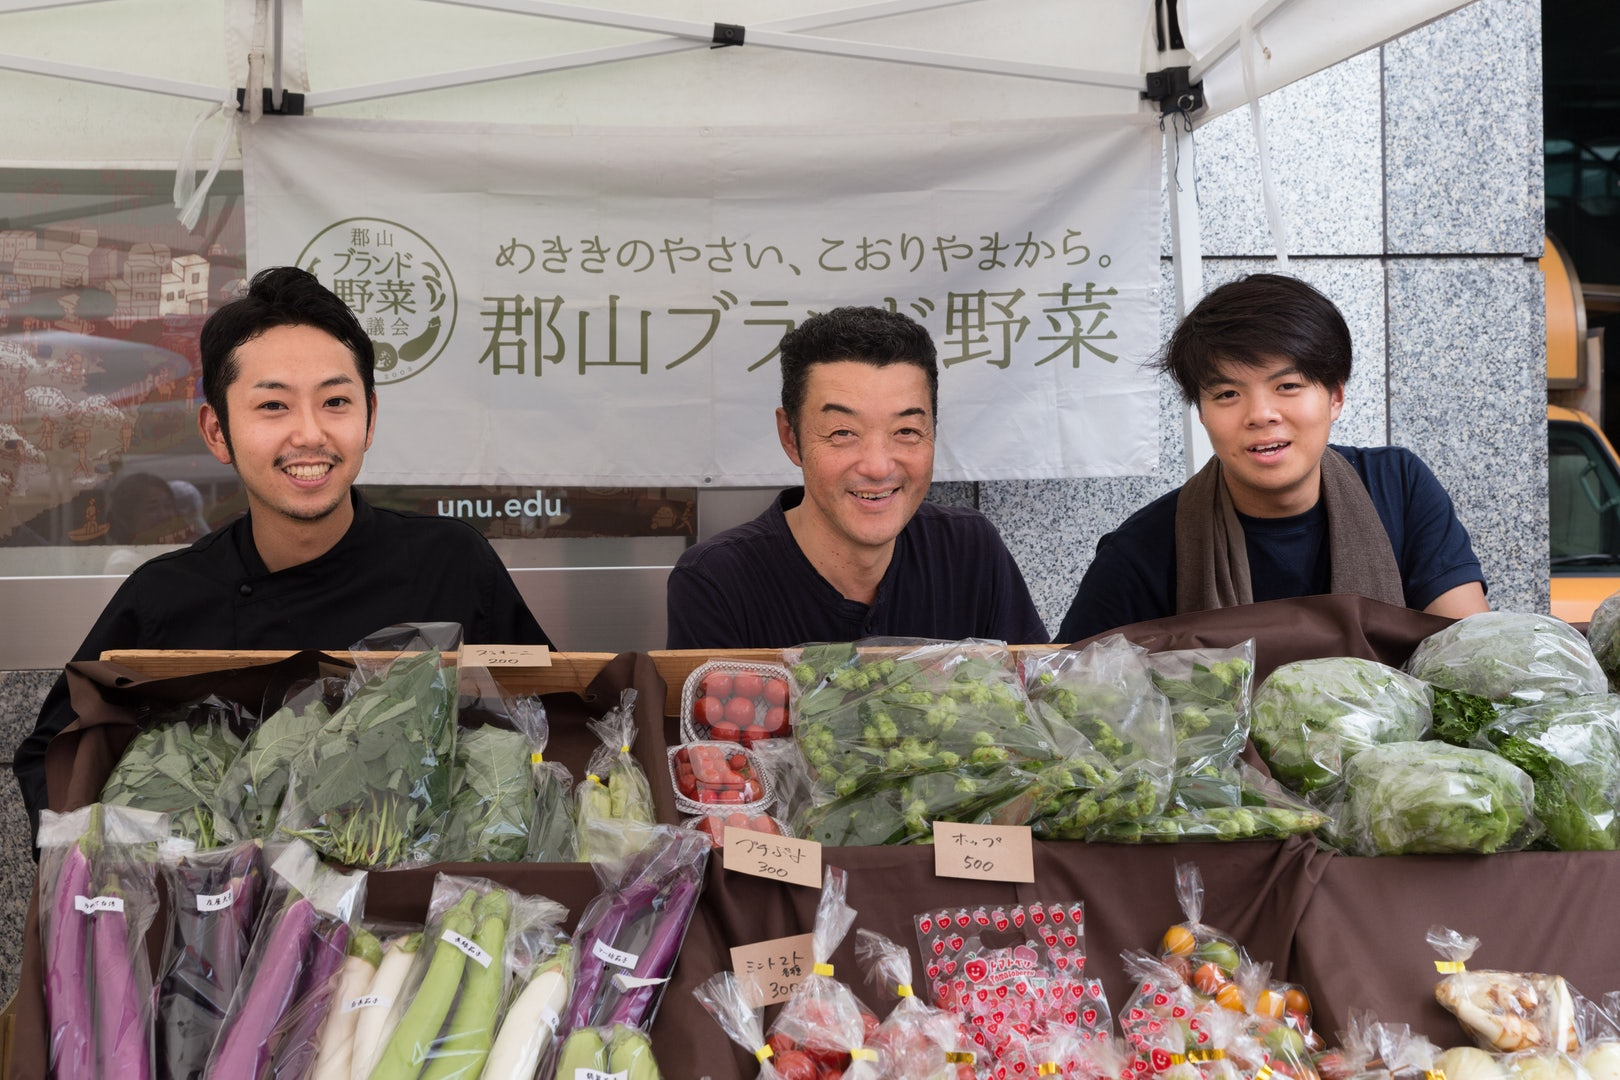 three Japanese men at a vegetable stand